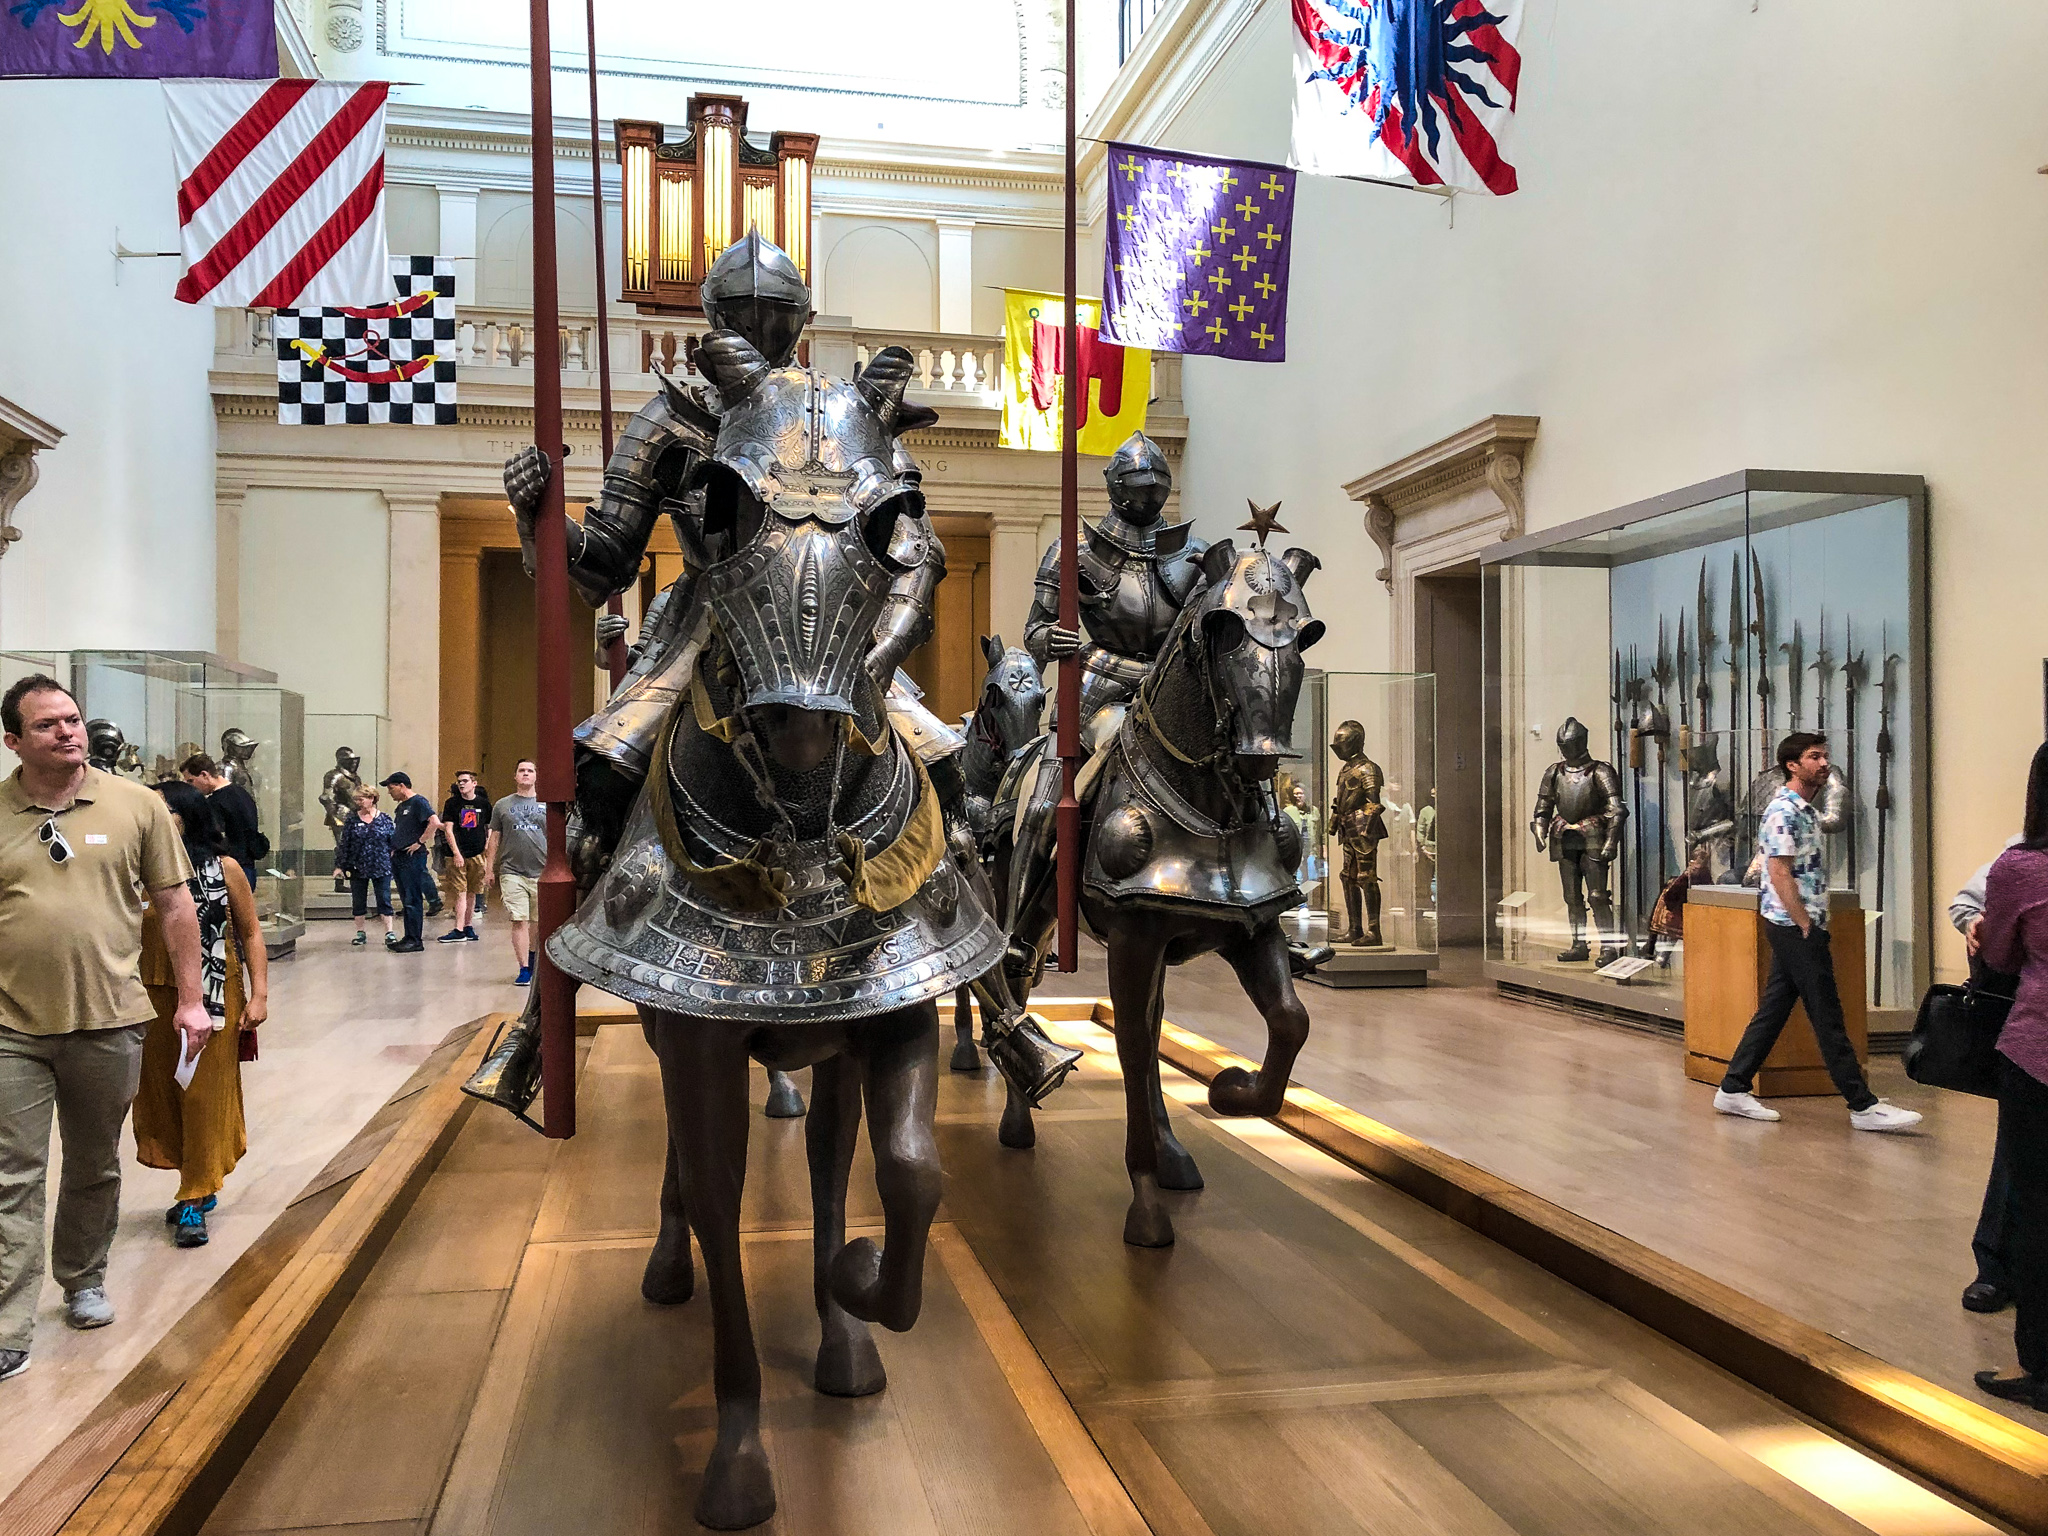 tips for visiting the metropolitan museum of art: see all the armor